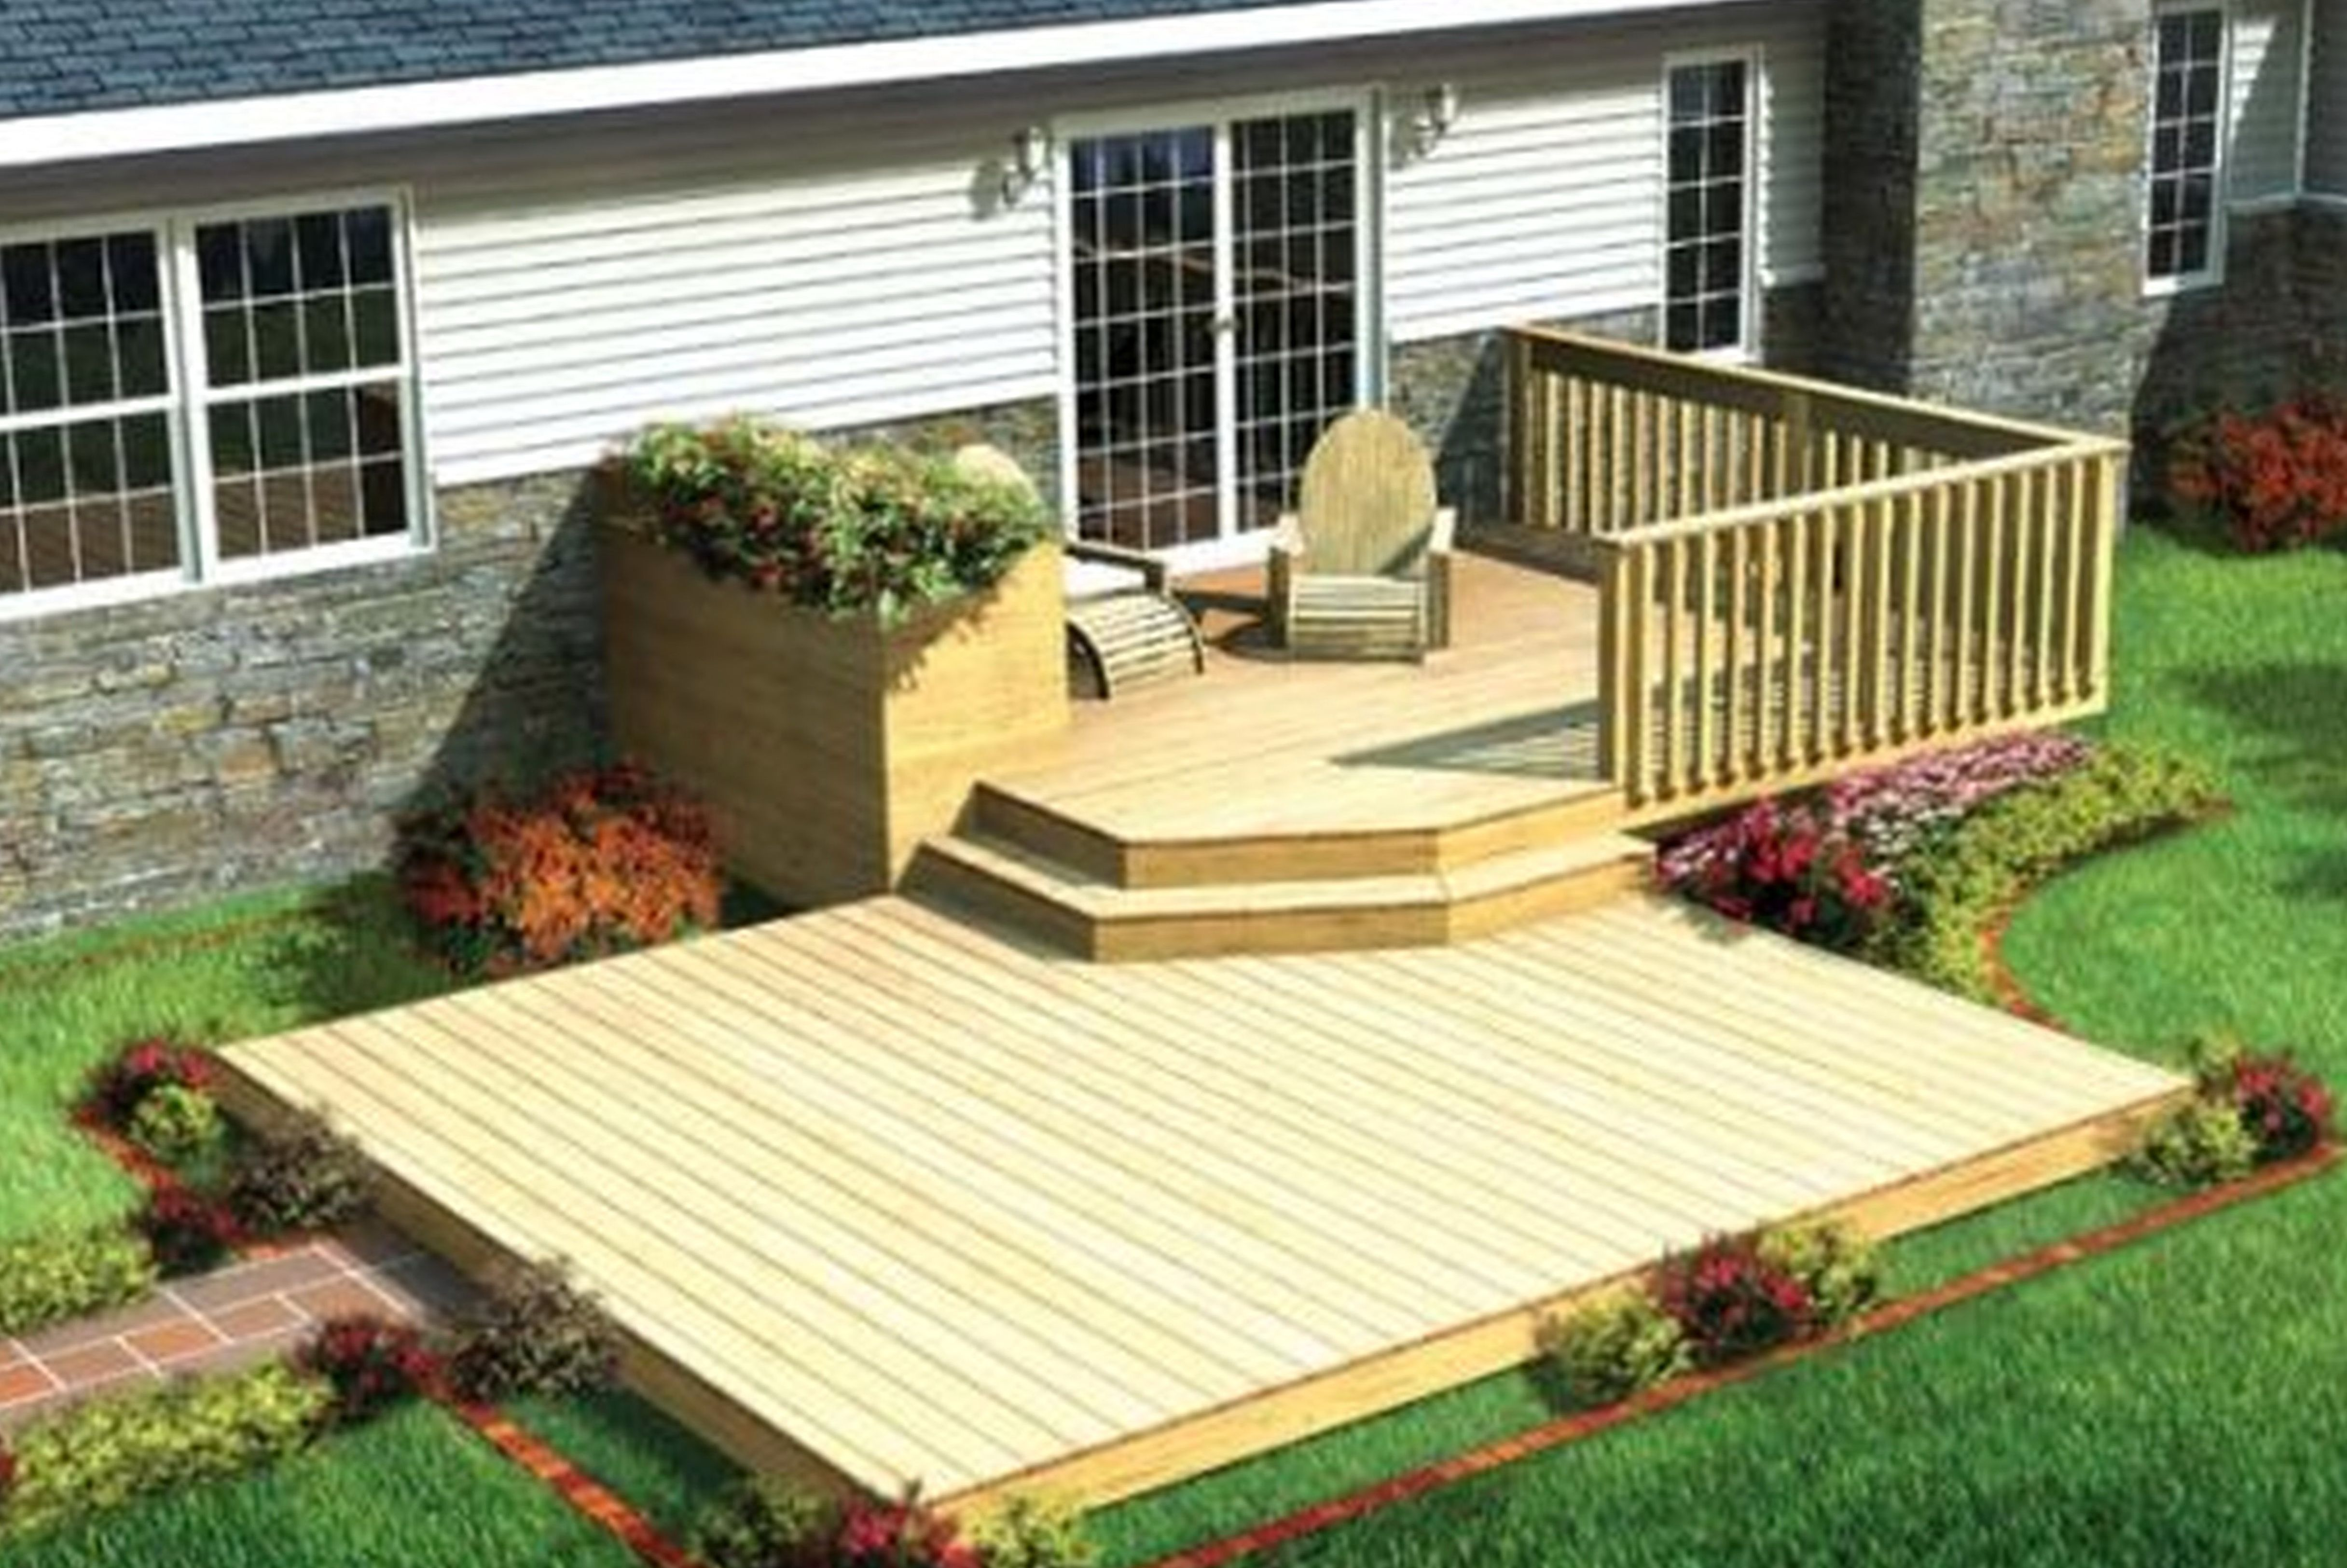 ground landscaping of decorating feature ideas living gardens size photos pati water backyards balcony spaces on patio deck a apartment outdoor patios decks for furniture small full cool budget floor and